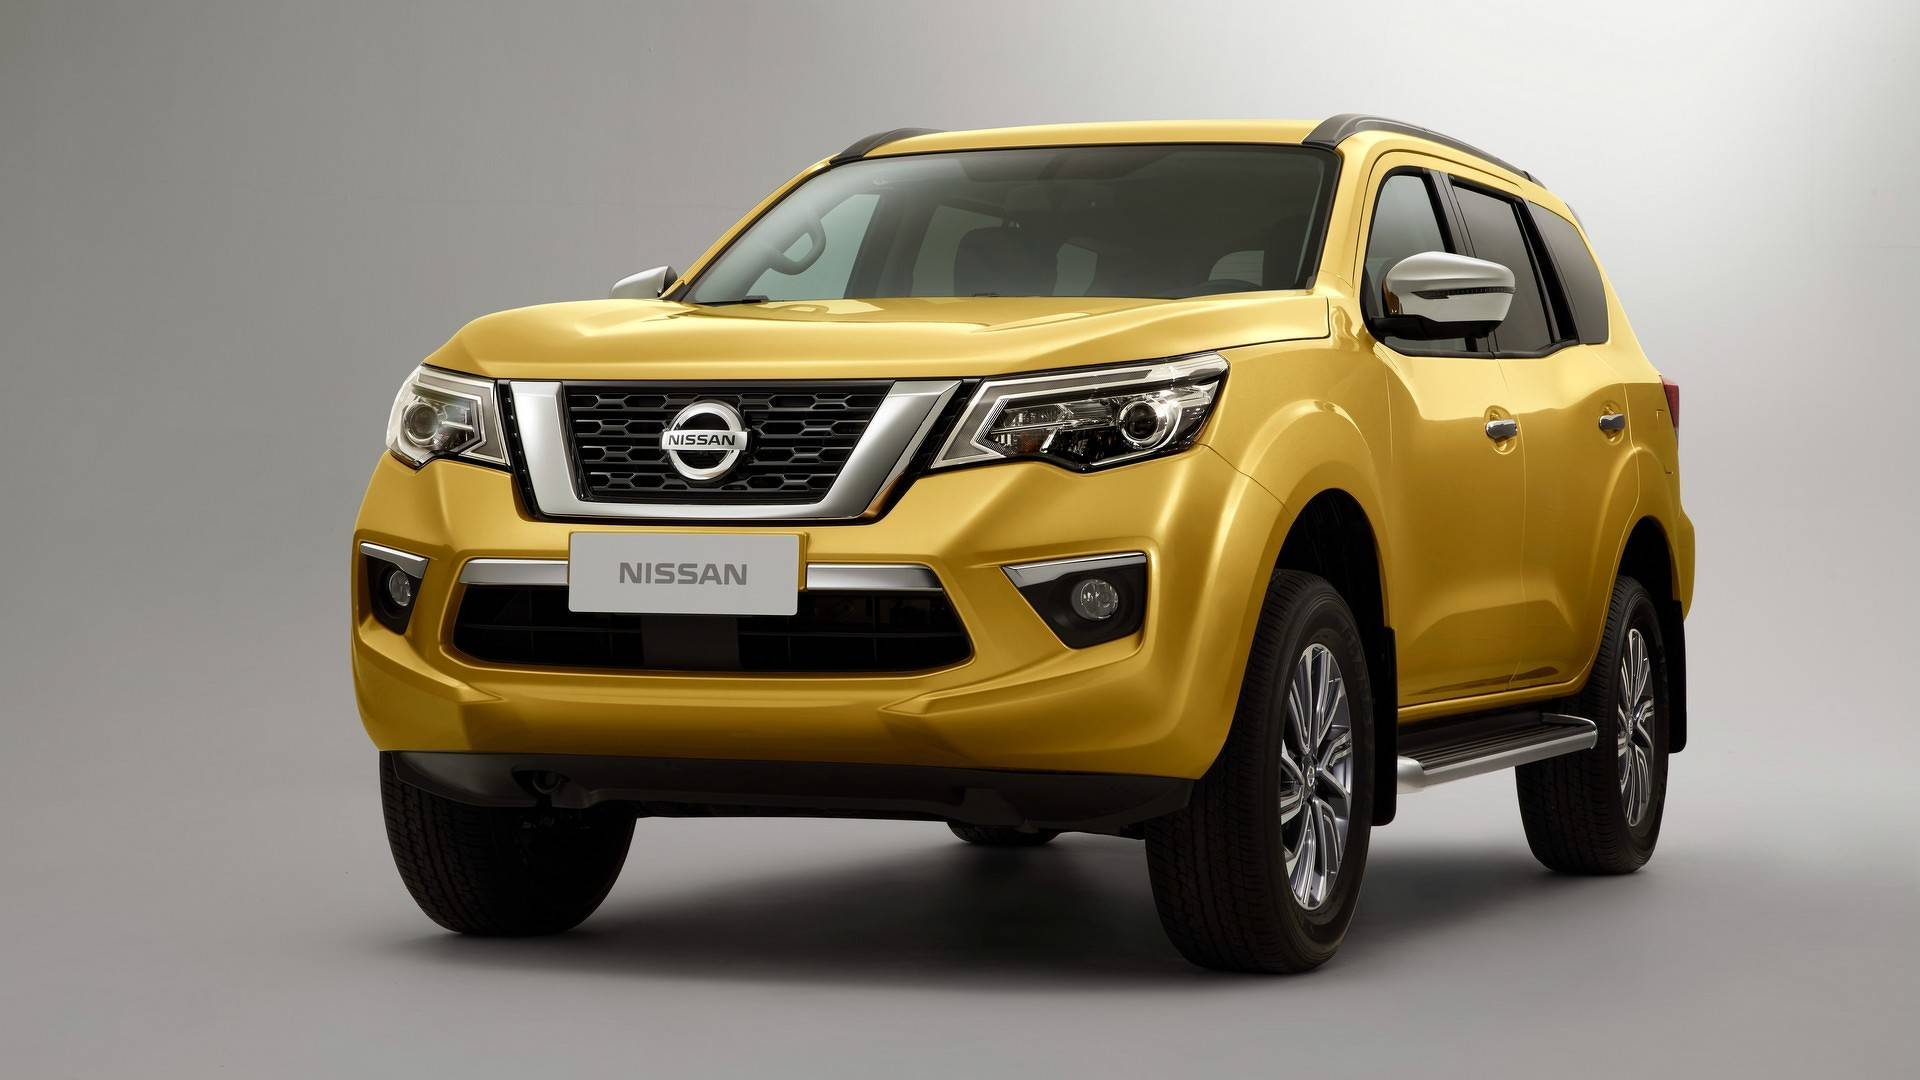 navara based 2018 nissan terra suv detailed ahead of auto. Black Bedroom Furniture Sets. Home Design Ideas